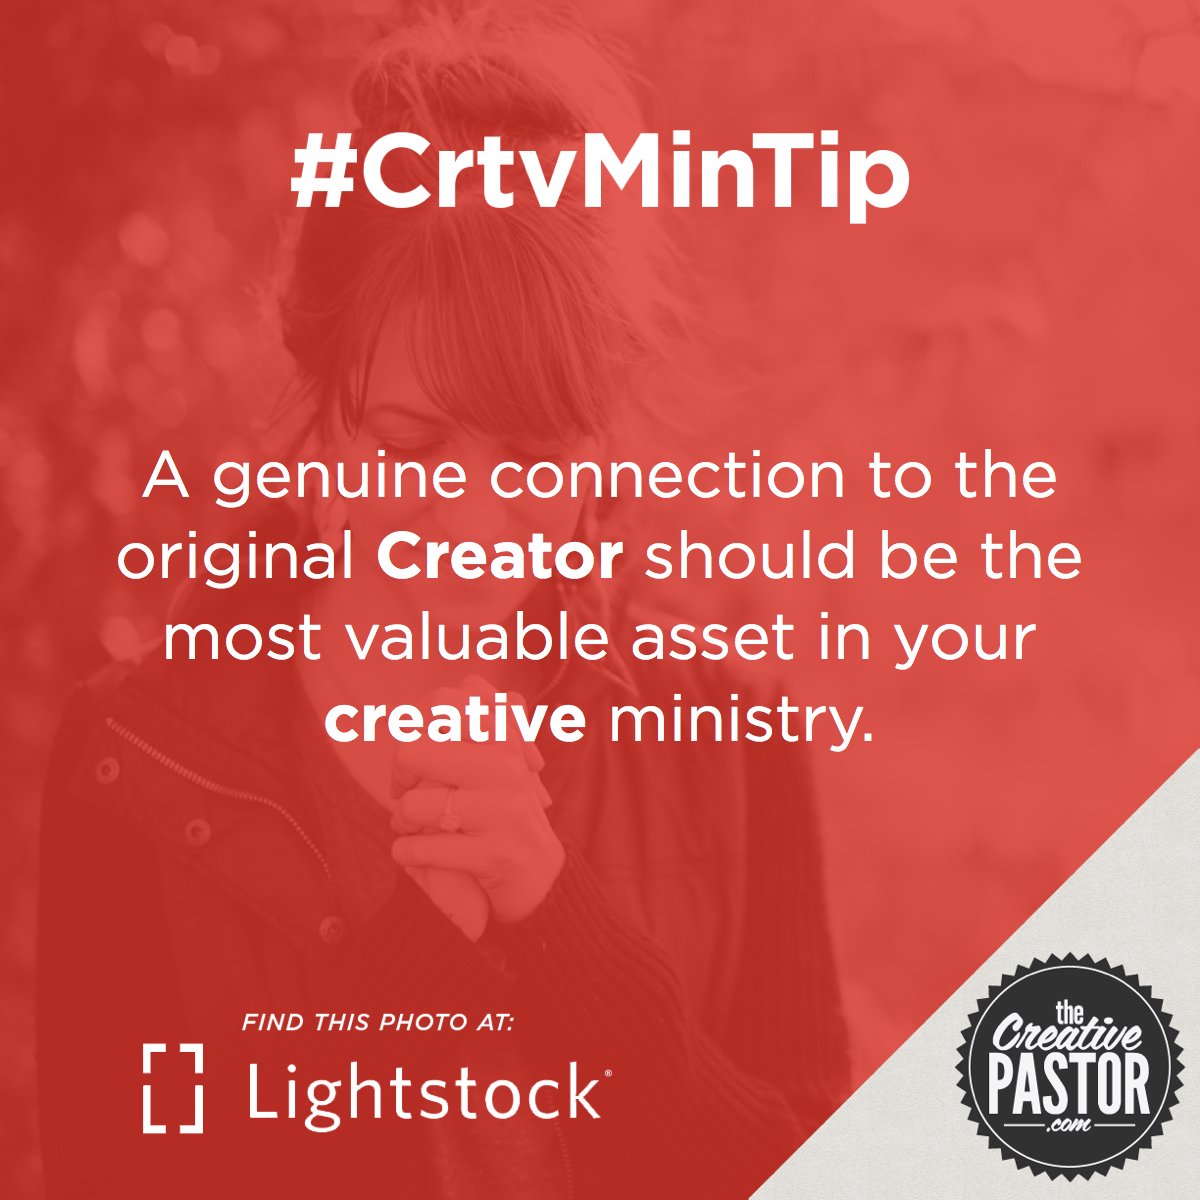 A genuine connection to the original Creator should be the most valuable asset in your creative ministry.